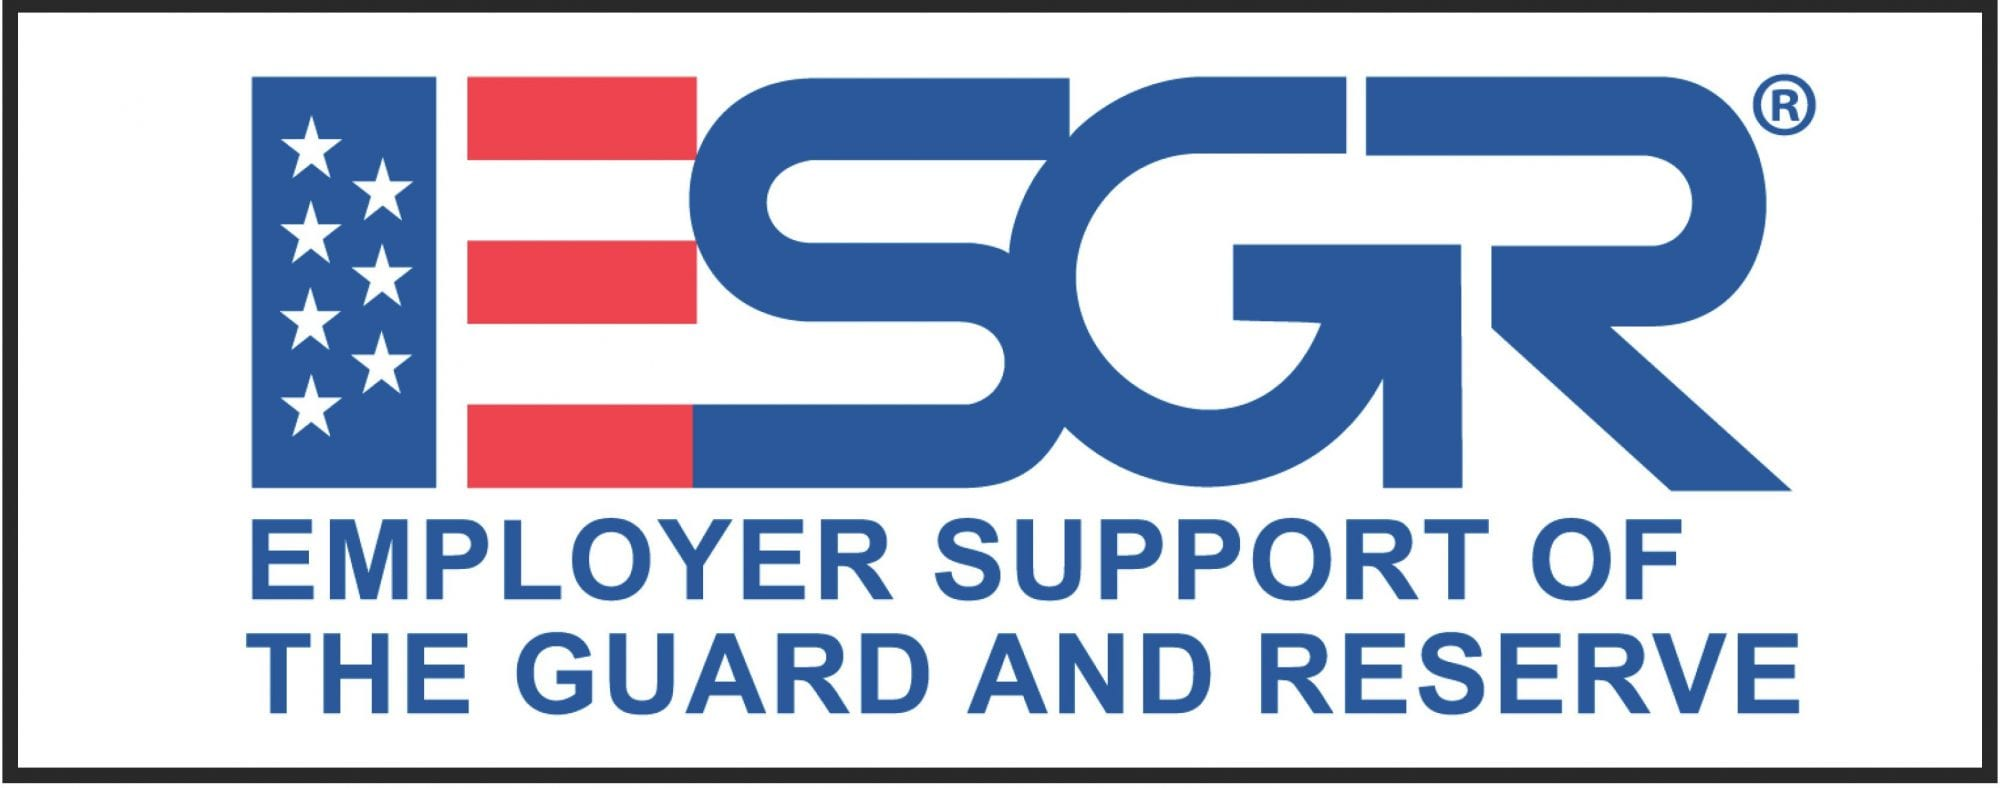 Oasis Participates in Massachusetts Employer Support of the Guard and Reserve (MA-ESGR) Employer Appreciation Day